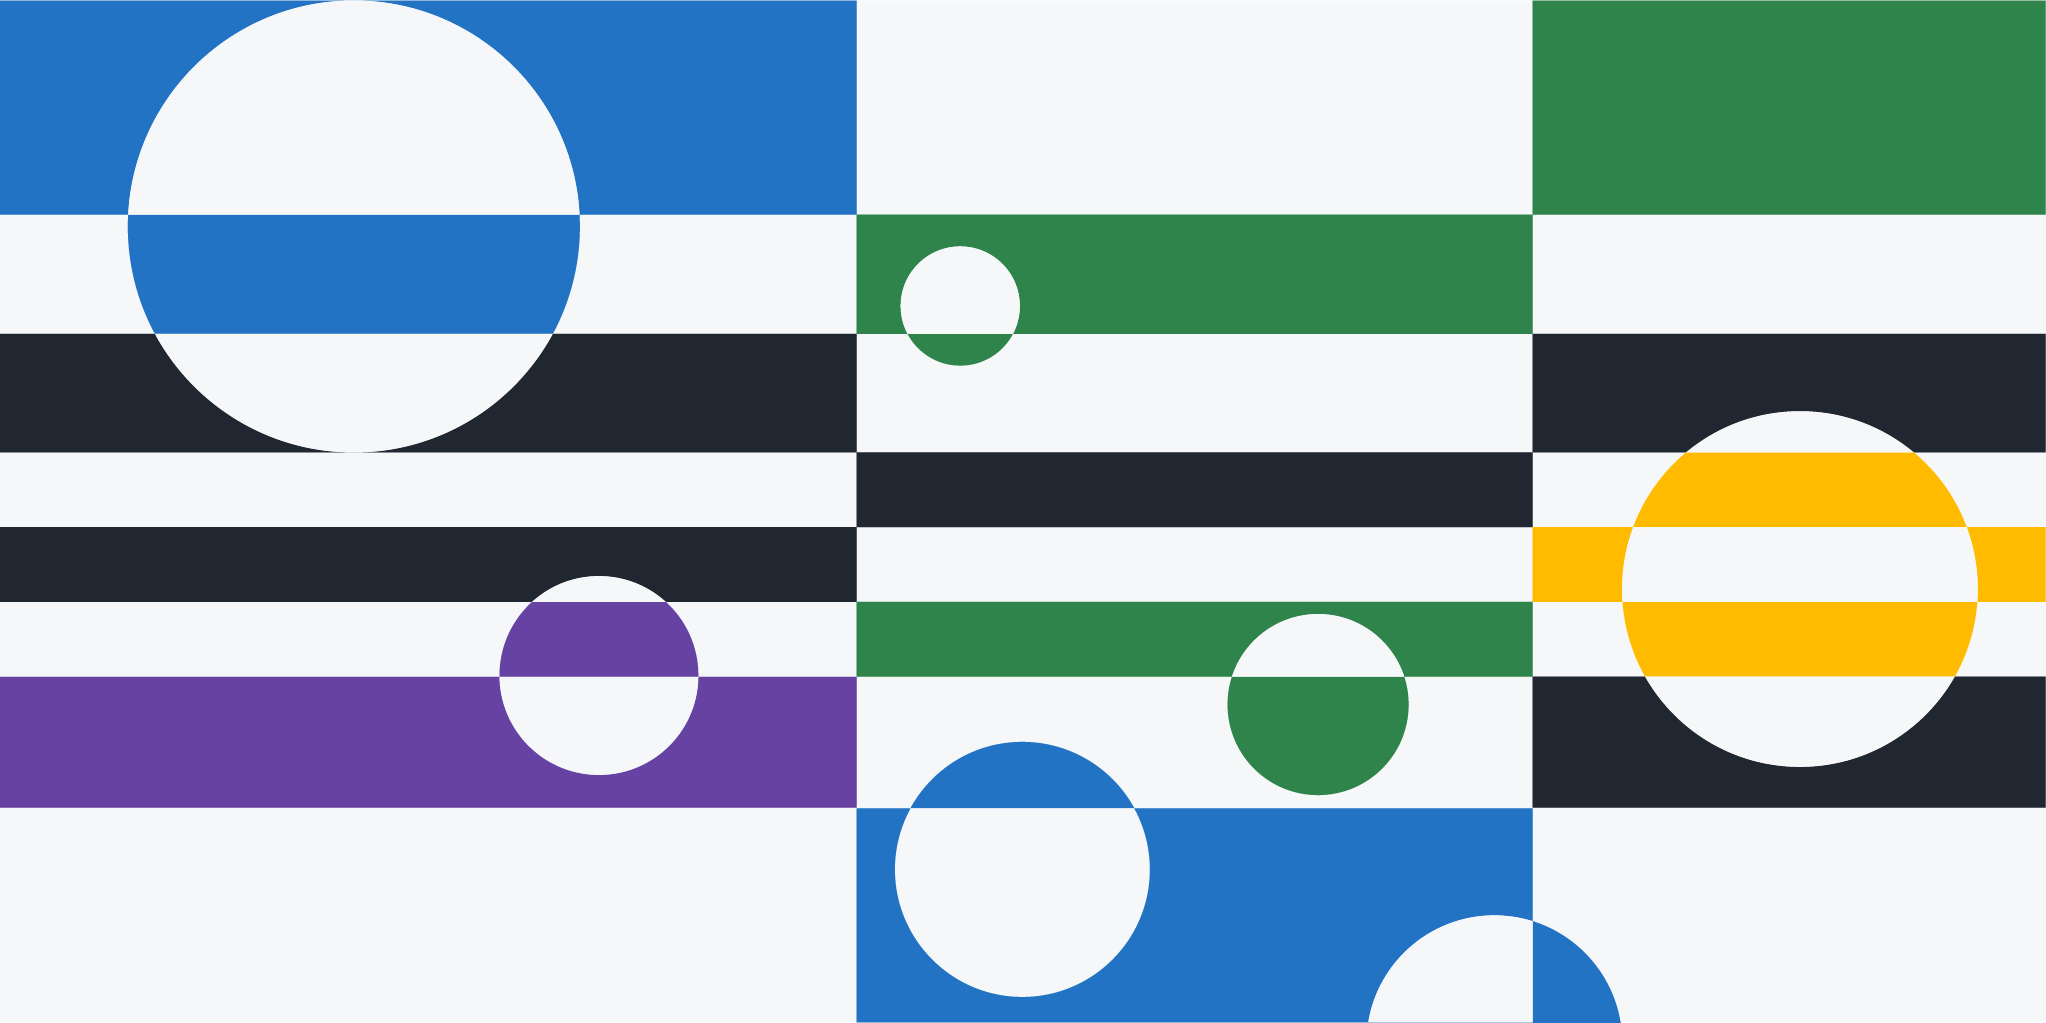 Multicolor graphic broken into three vertical rectangles with smaller, horizontal rectangles dividing each vertically. Circles are overlaid in each section making them appear 3-D.